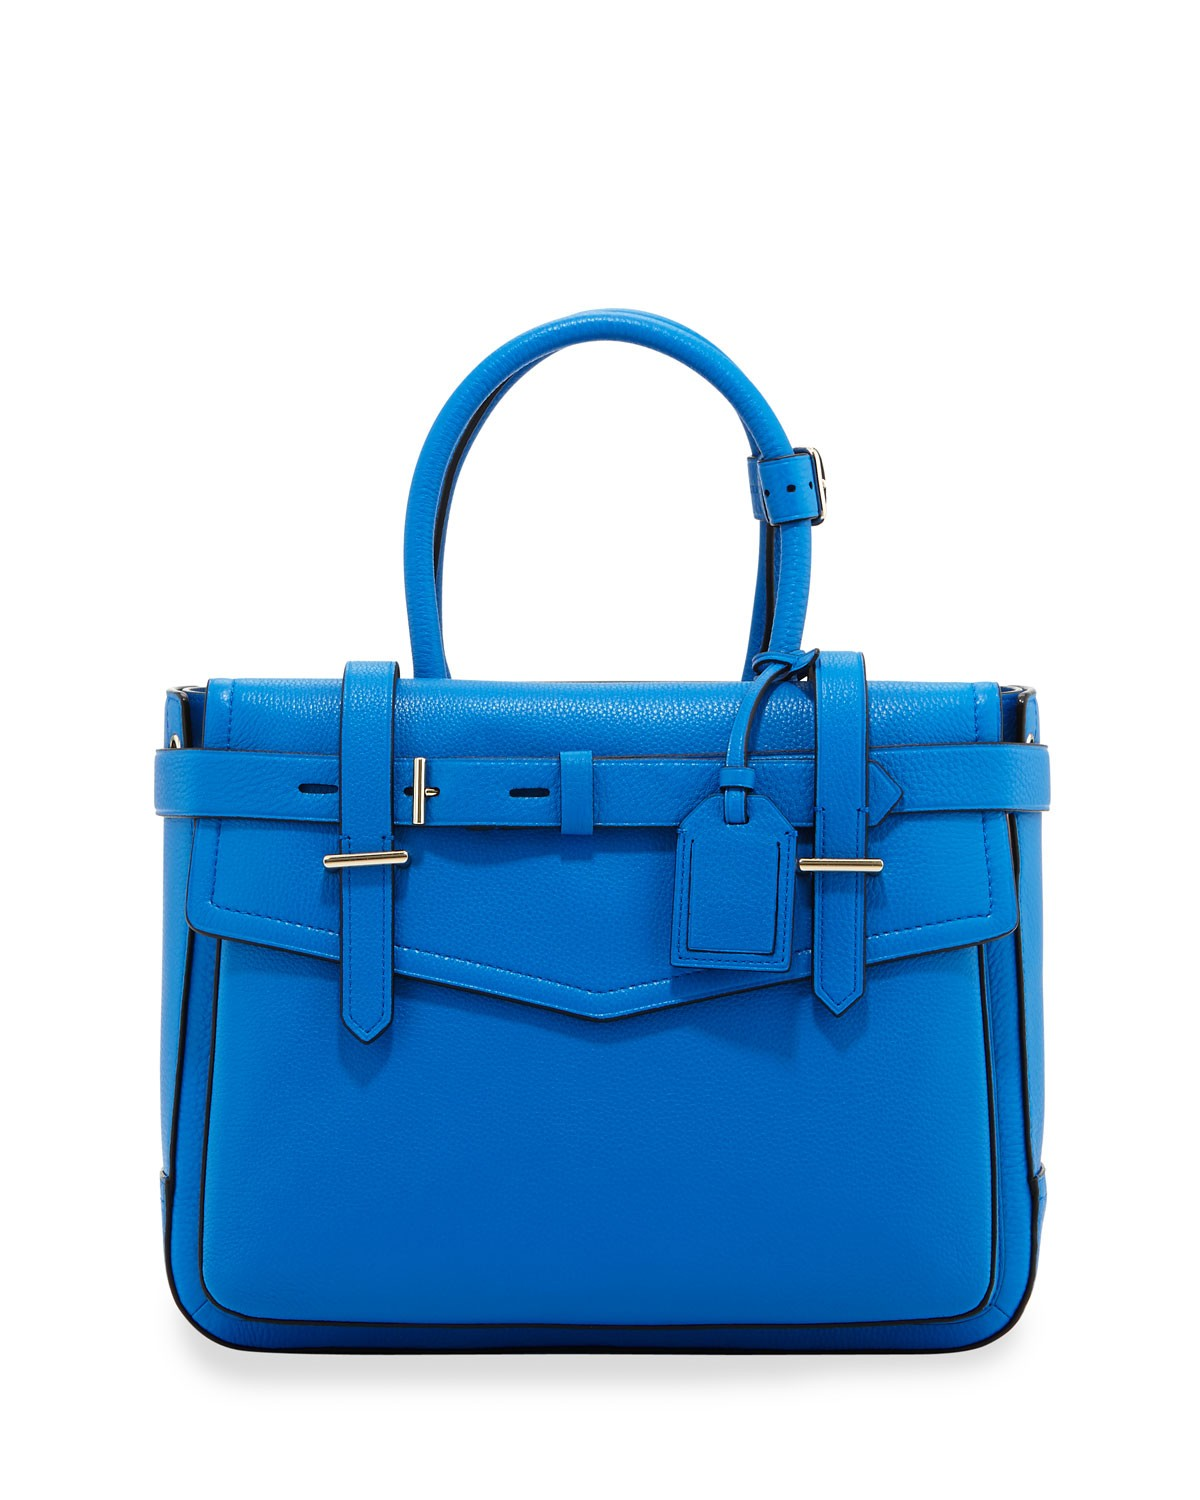 Boxer Pebbled Leather Tote Bag, Blue - Reed Krakoff